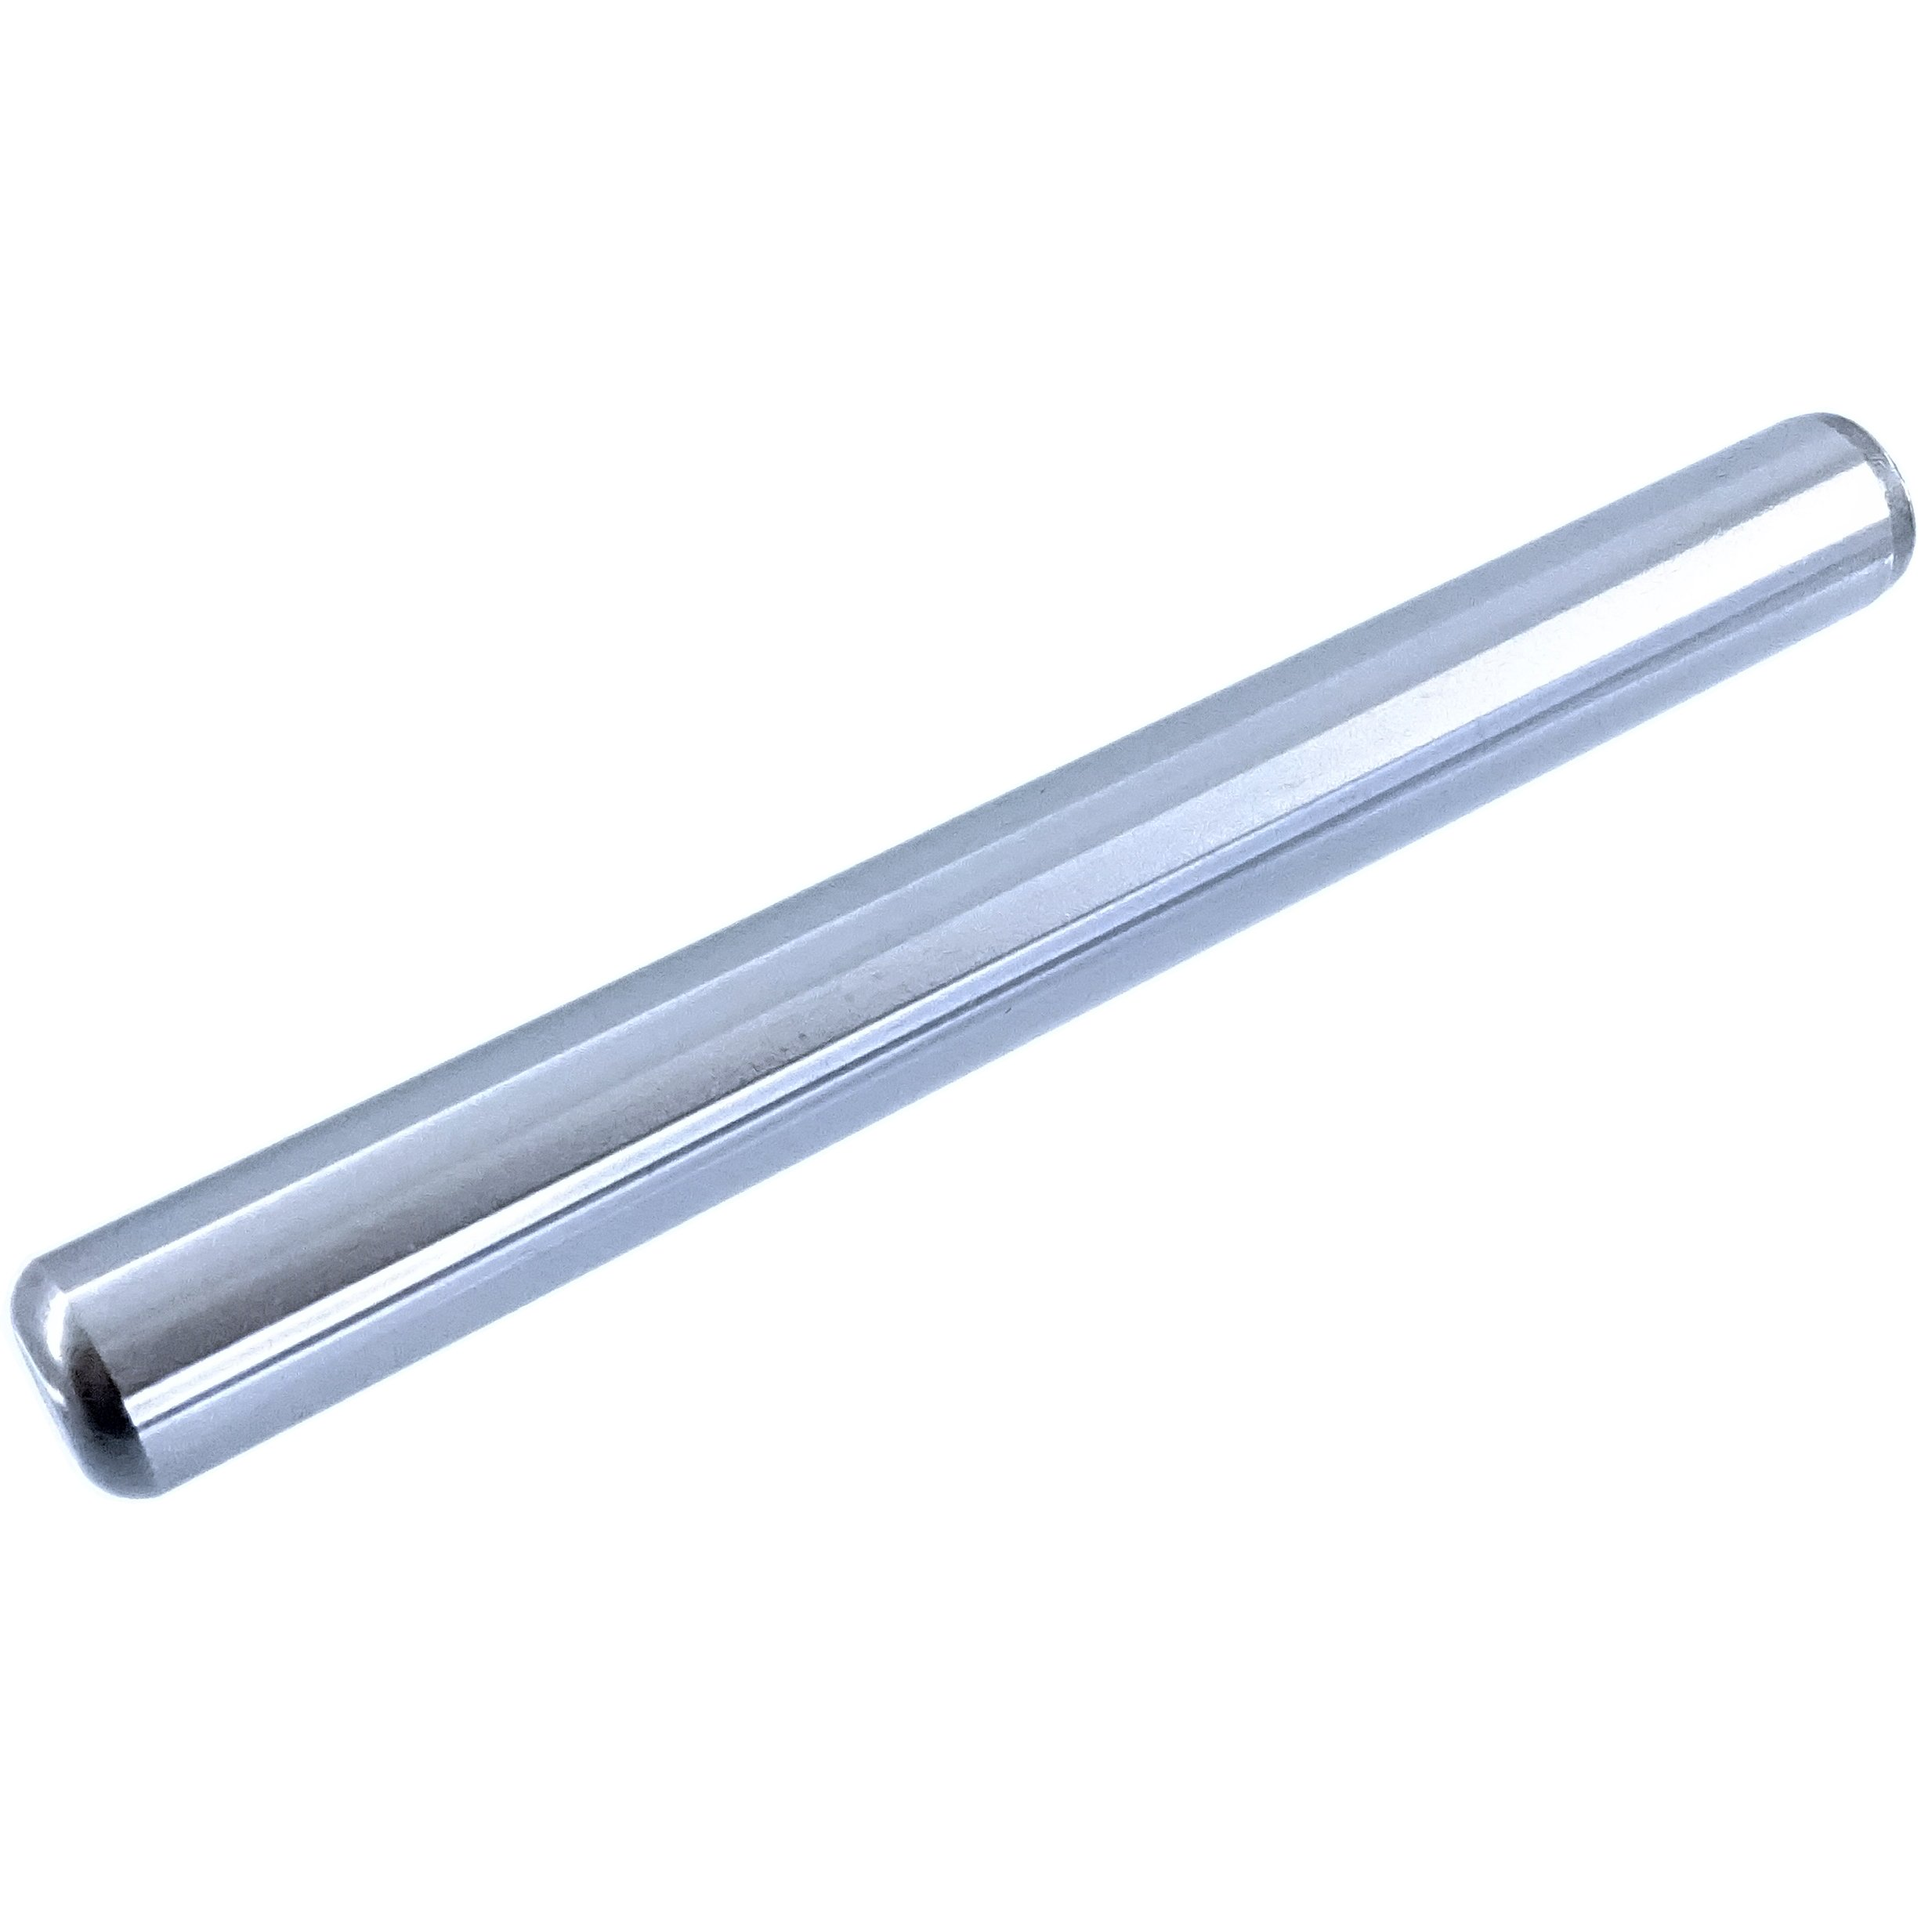 7/16 x 4'' Dowel Pins, Alloy Steel, Pack of 4